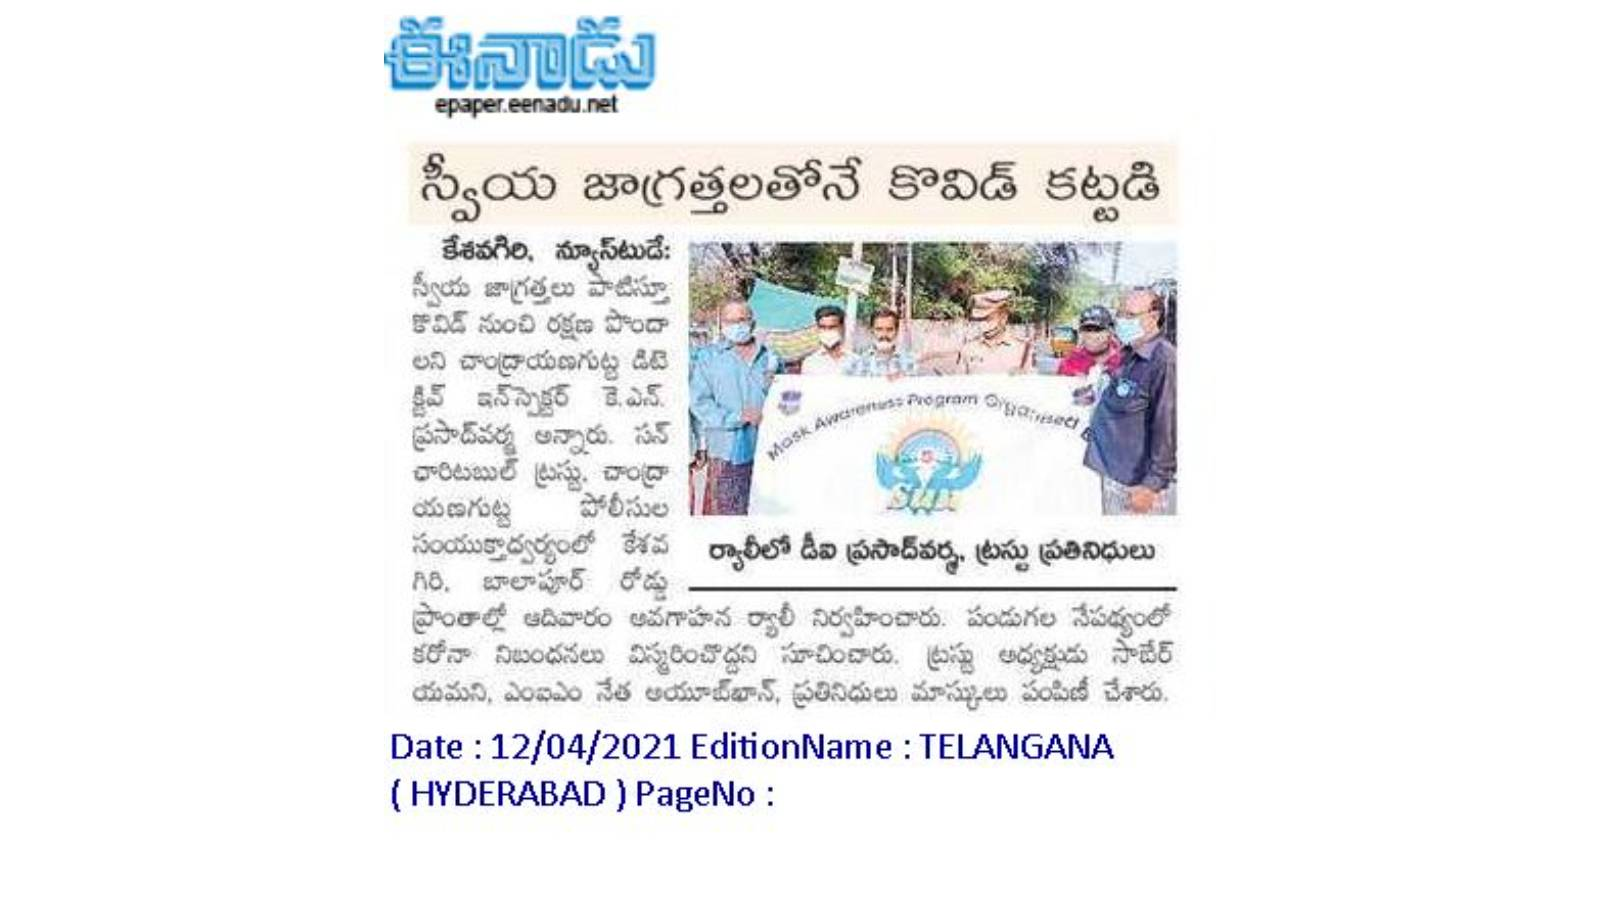 Our Mask Distri Bution and awarness Program published by Eenadu Paper